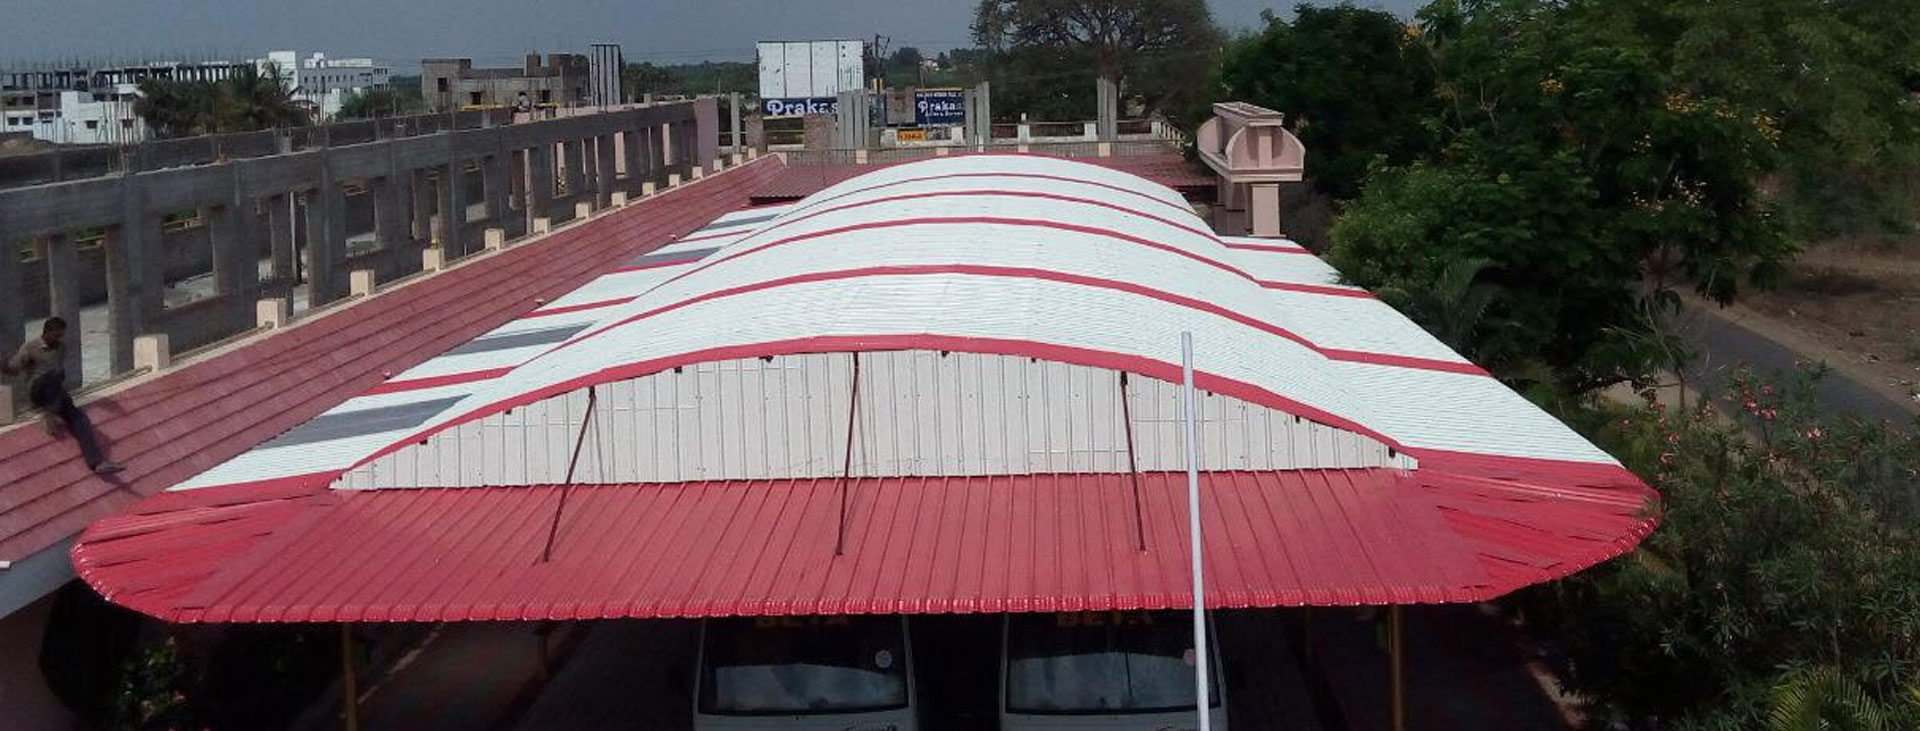 Steel Metal Lexan Tuflite Polycarbonate Roofing Sheets manufacturers Suppliers Dealers traders Chennai